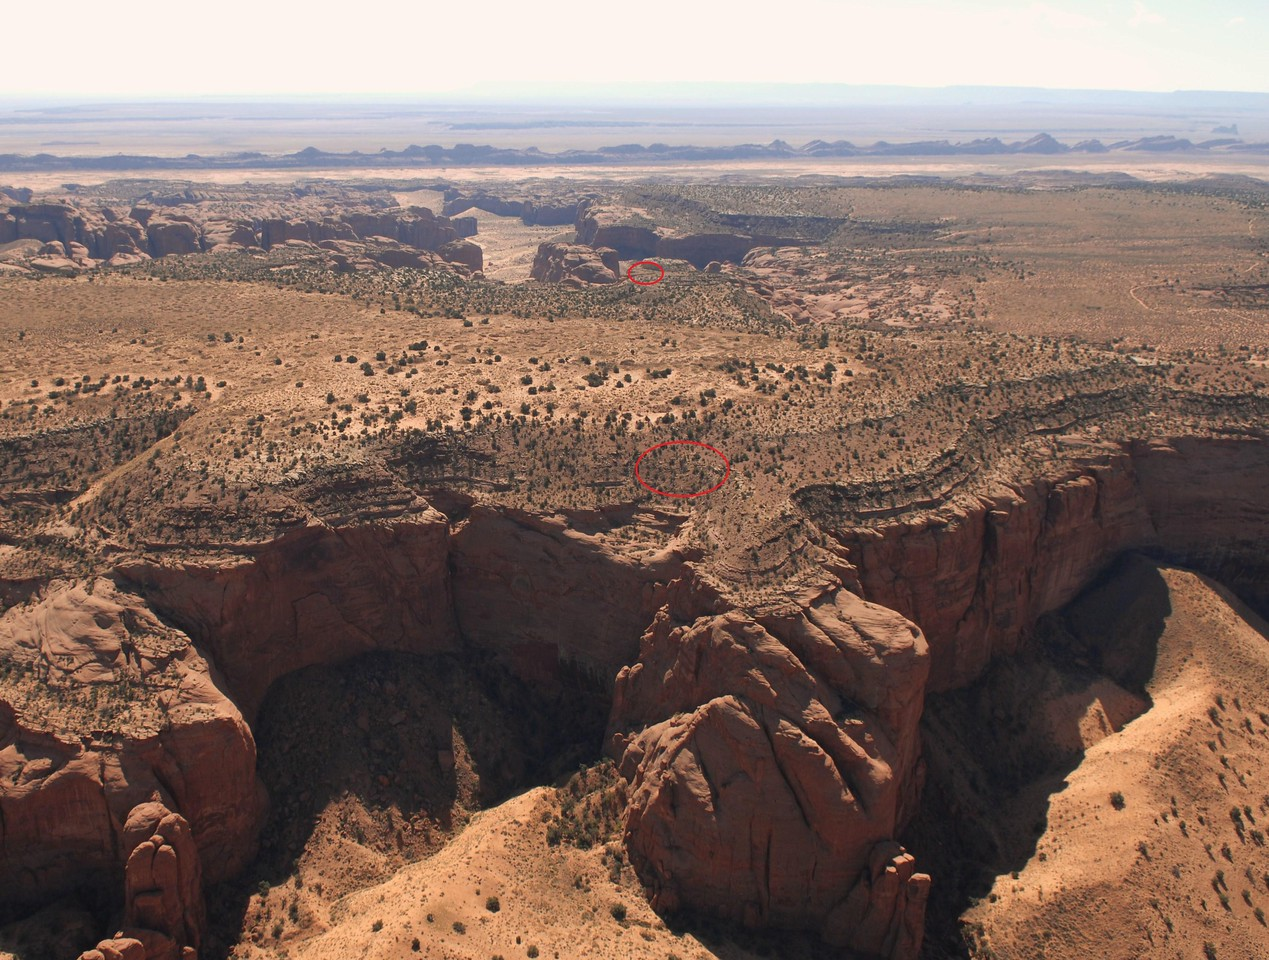 This aerial photo taken of Hunts Mesa at an altitude of 7,000 feet illustrates the B-52's initial collision with the north edge of the mesa (large red oval) and the final impact point (small red oval) nearly 3,500 feet away. (Photo taken 9/29/08)